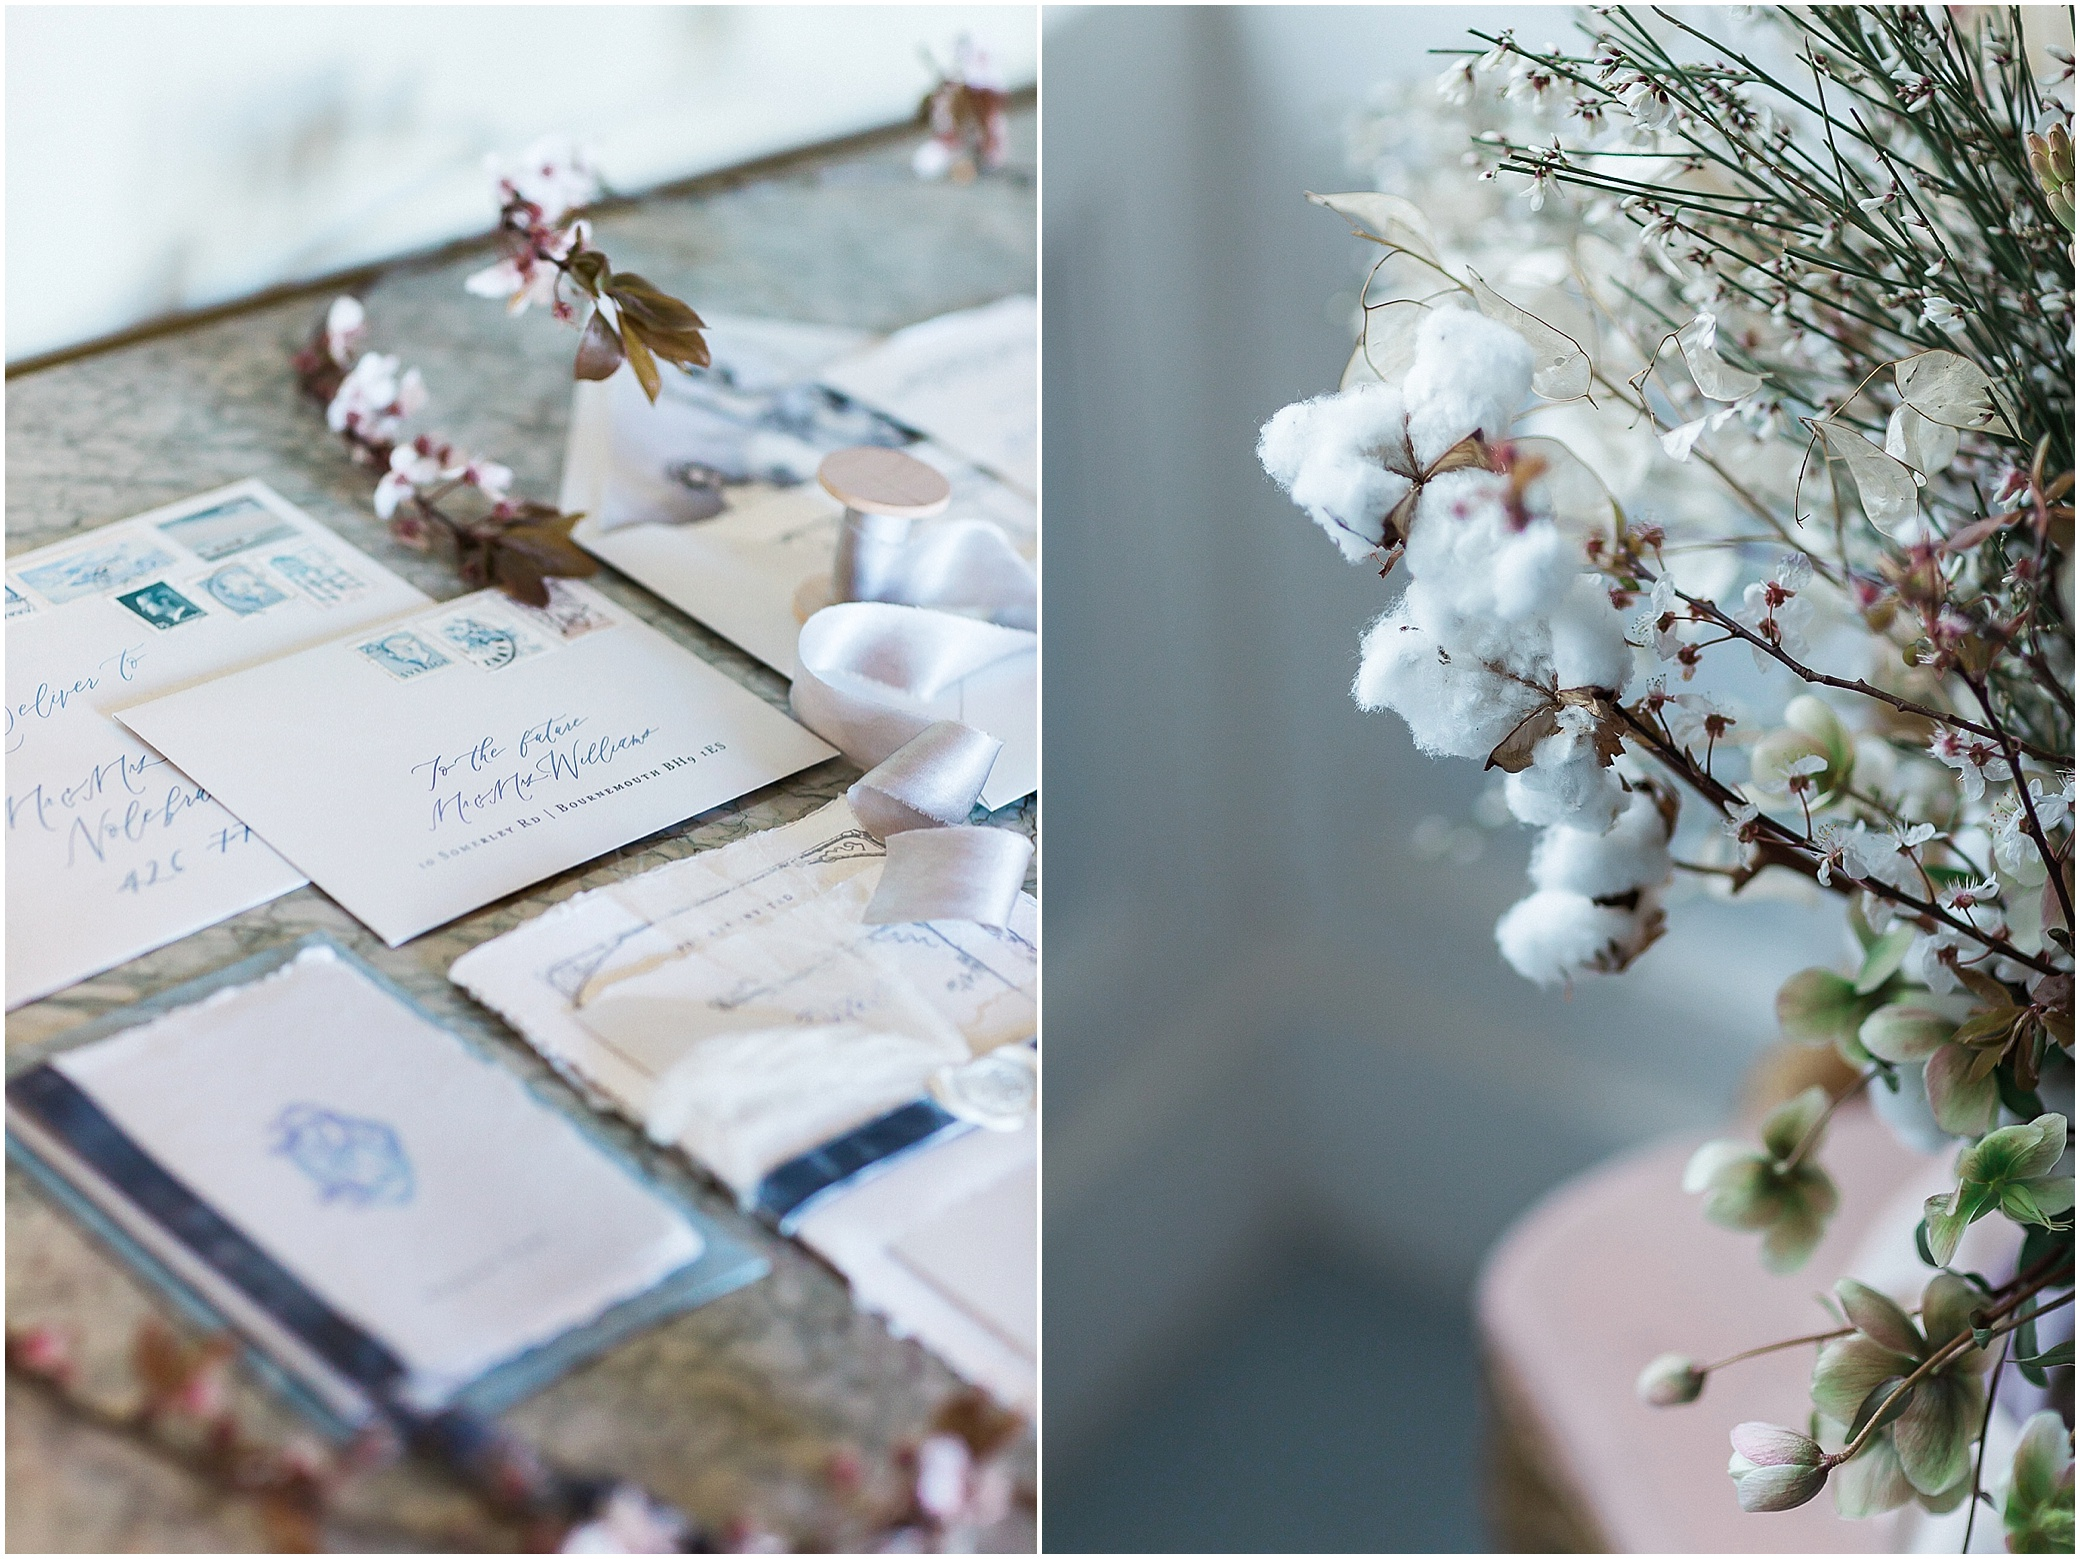 wedding stationery and cotton flowers